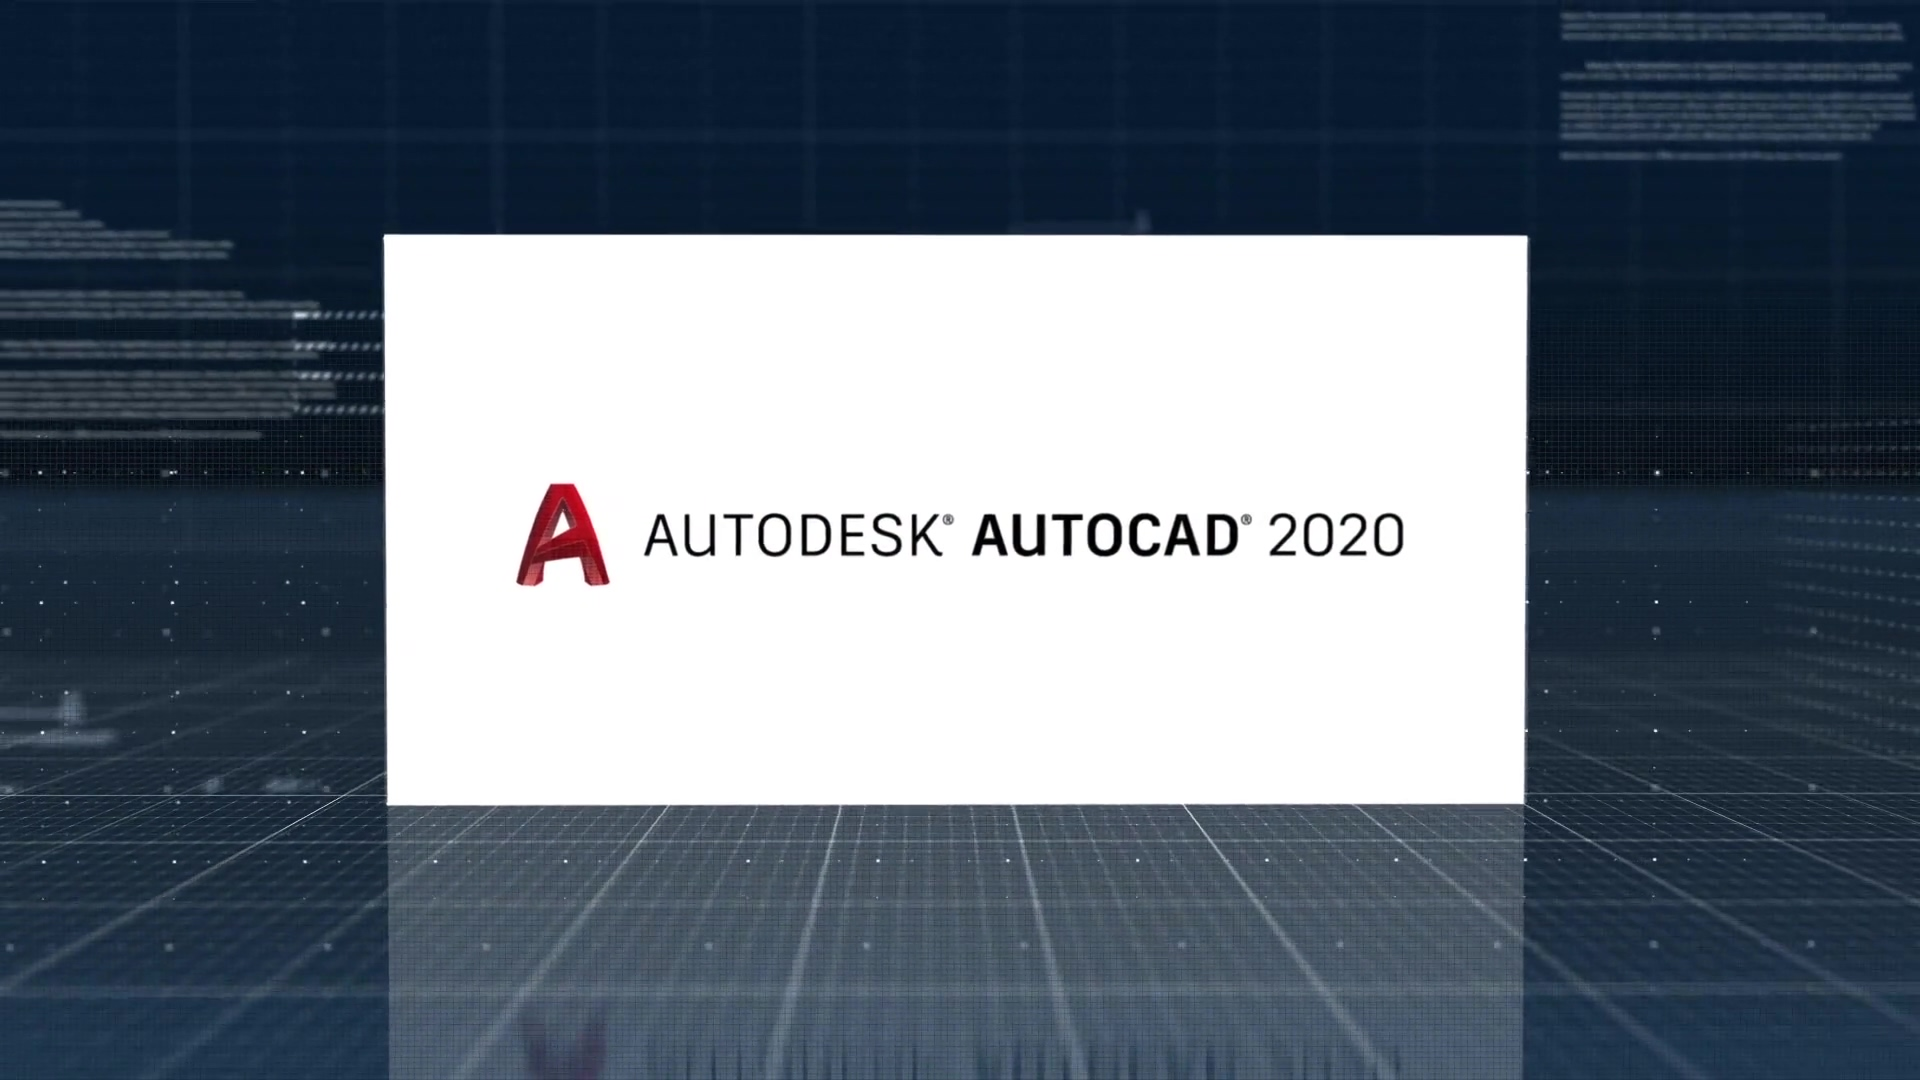 19 Q2 CDC MFG AutoCAD 2020 product overview video